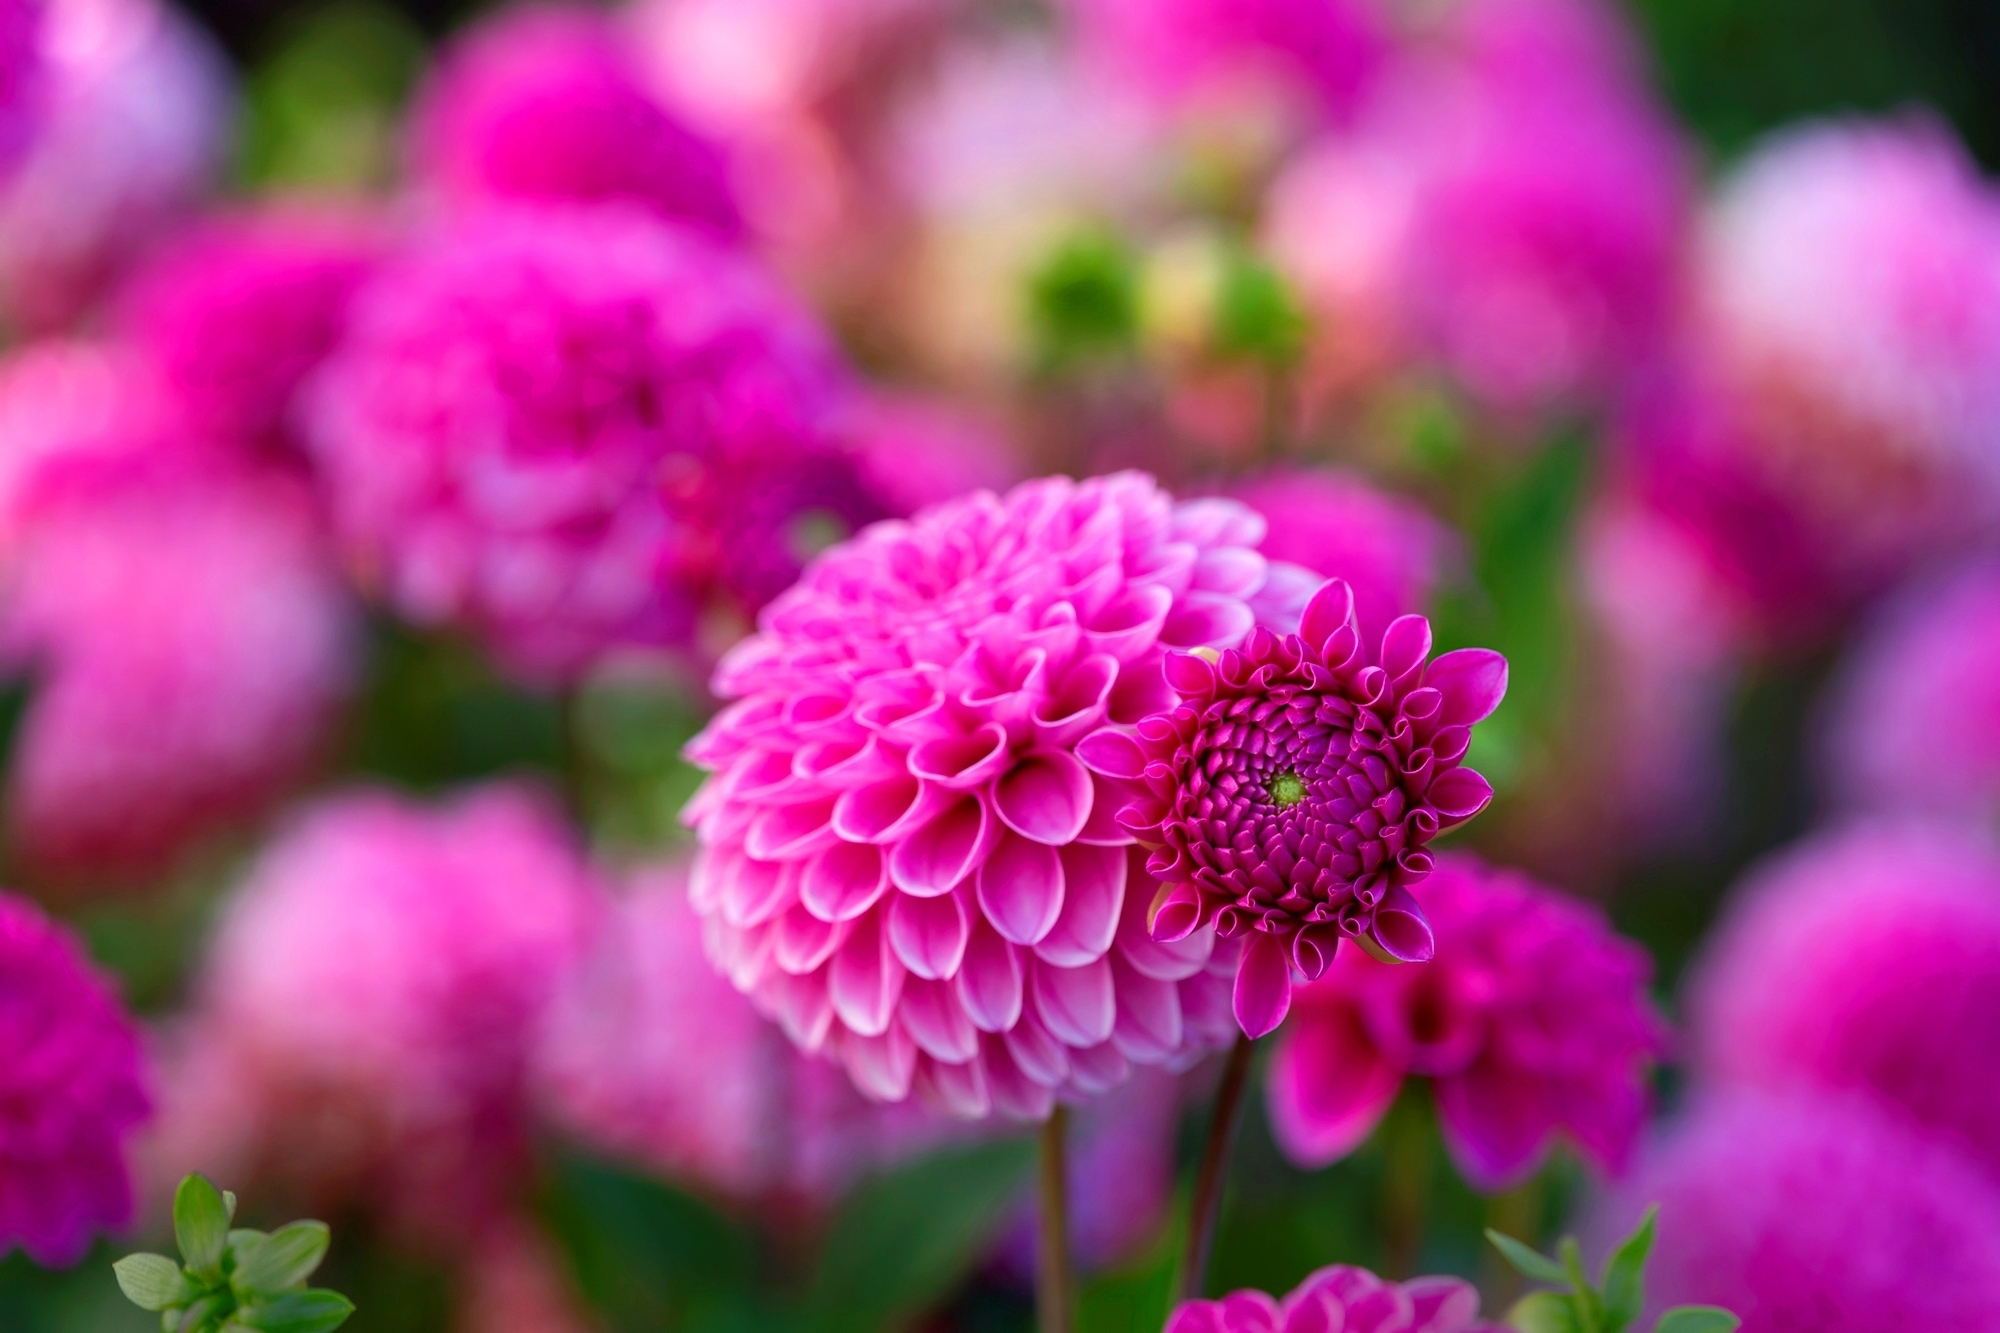 Flowers Images Flowers Hd Wallpaper And Background Photos 37212414